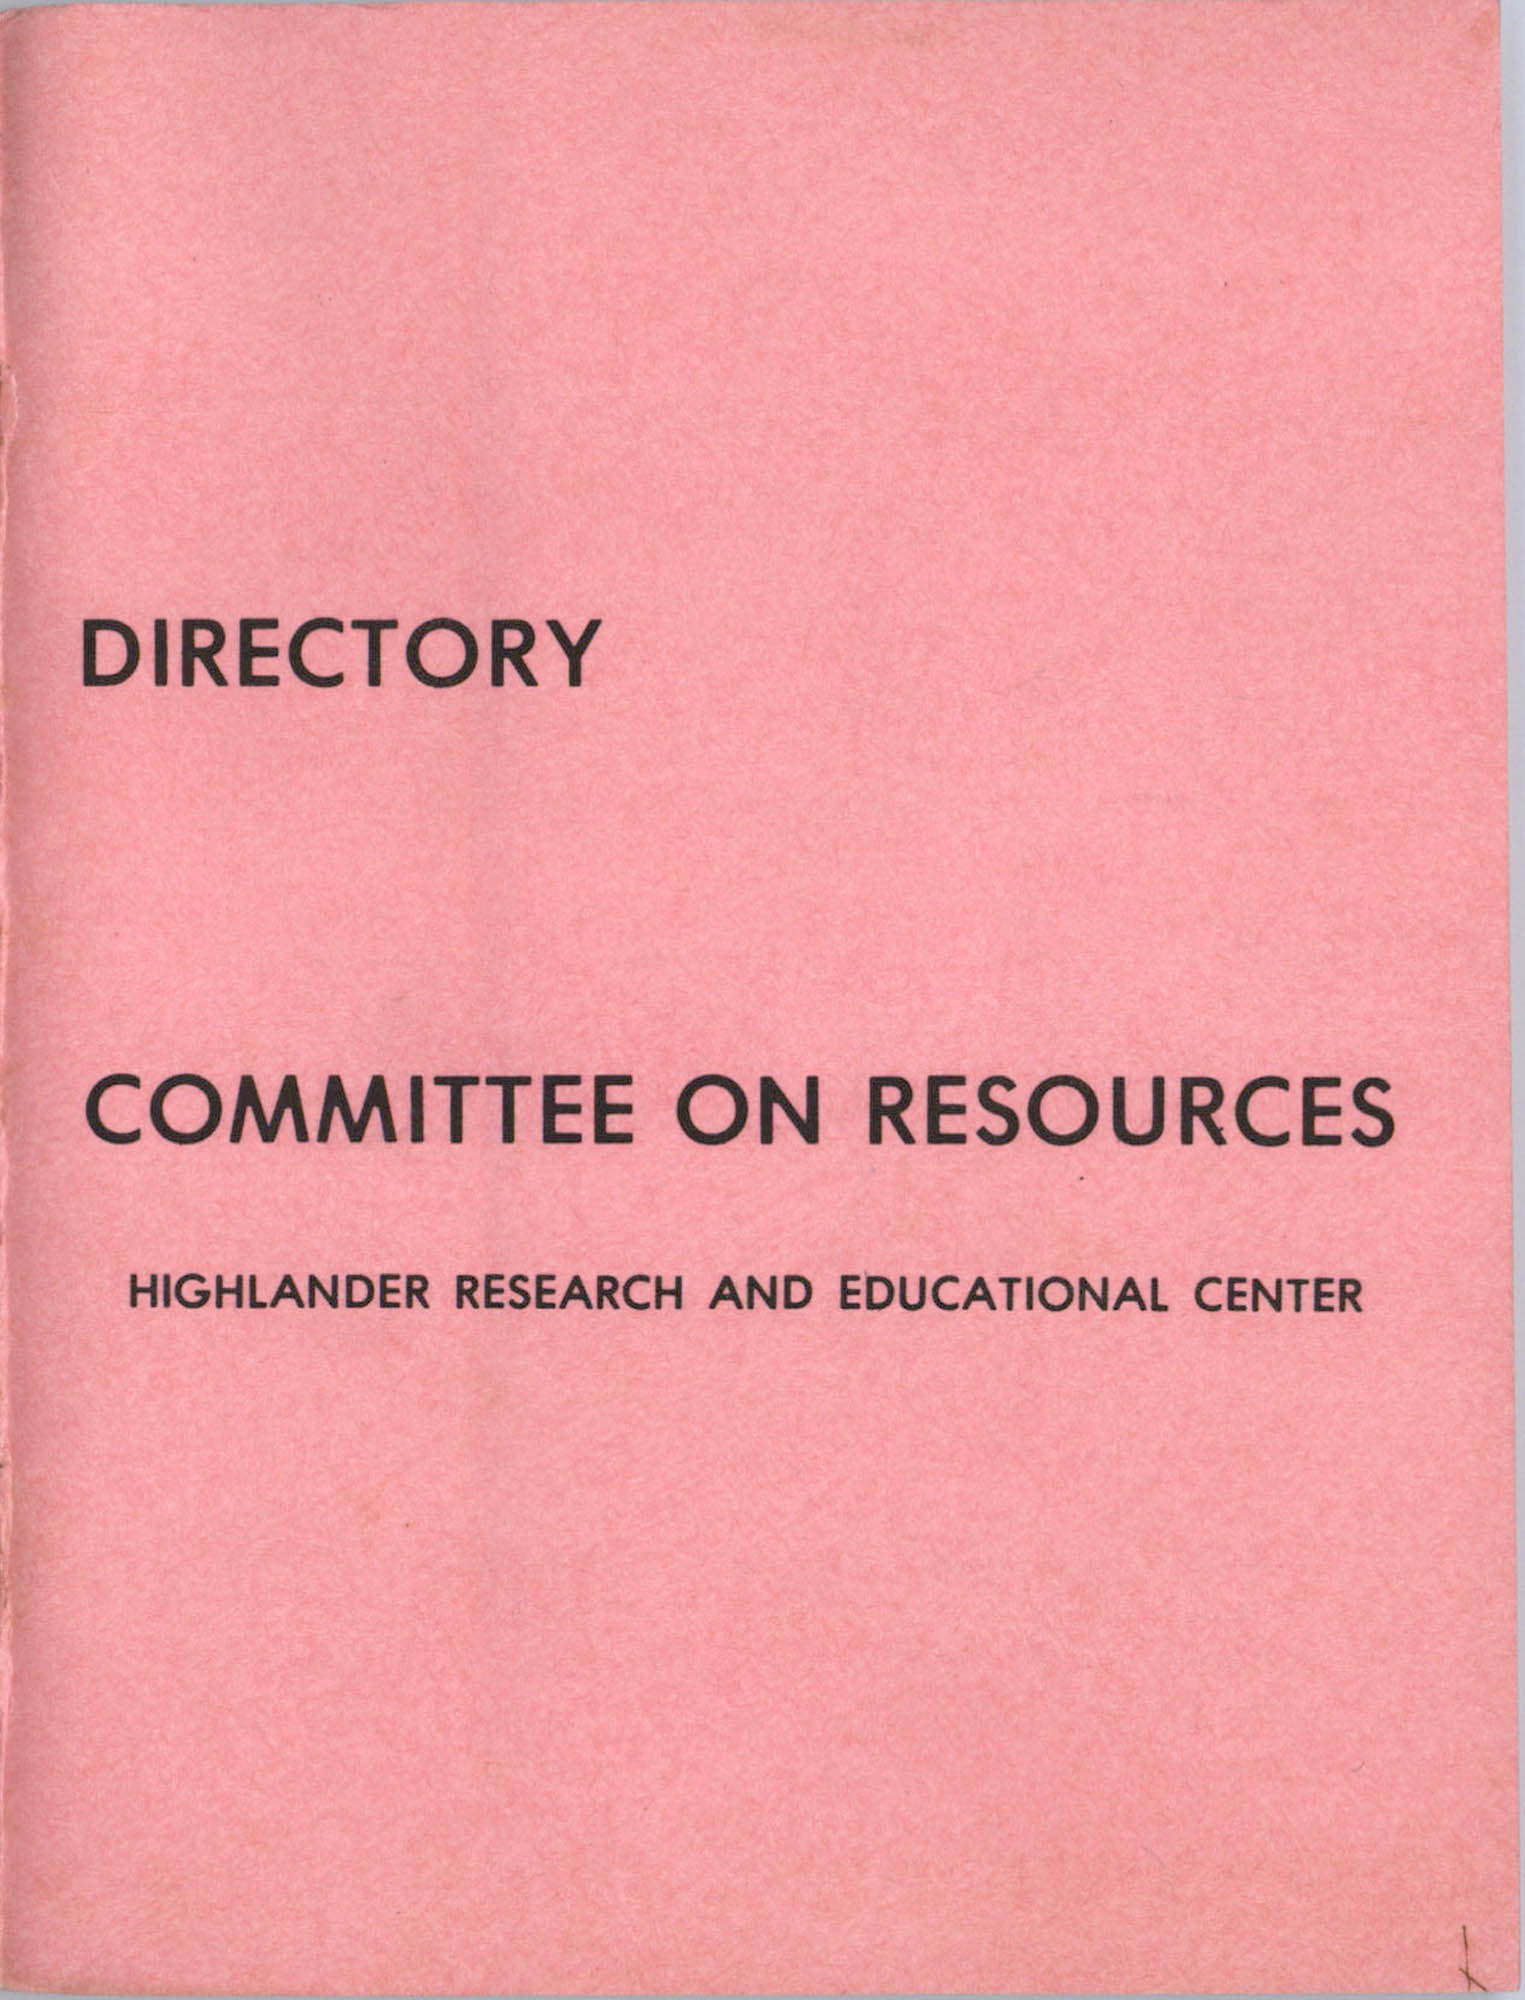 Highlander Research and Educational Center's Committee on Resources Directory, Front Cover Exterior